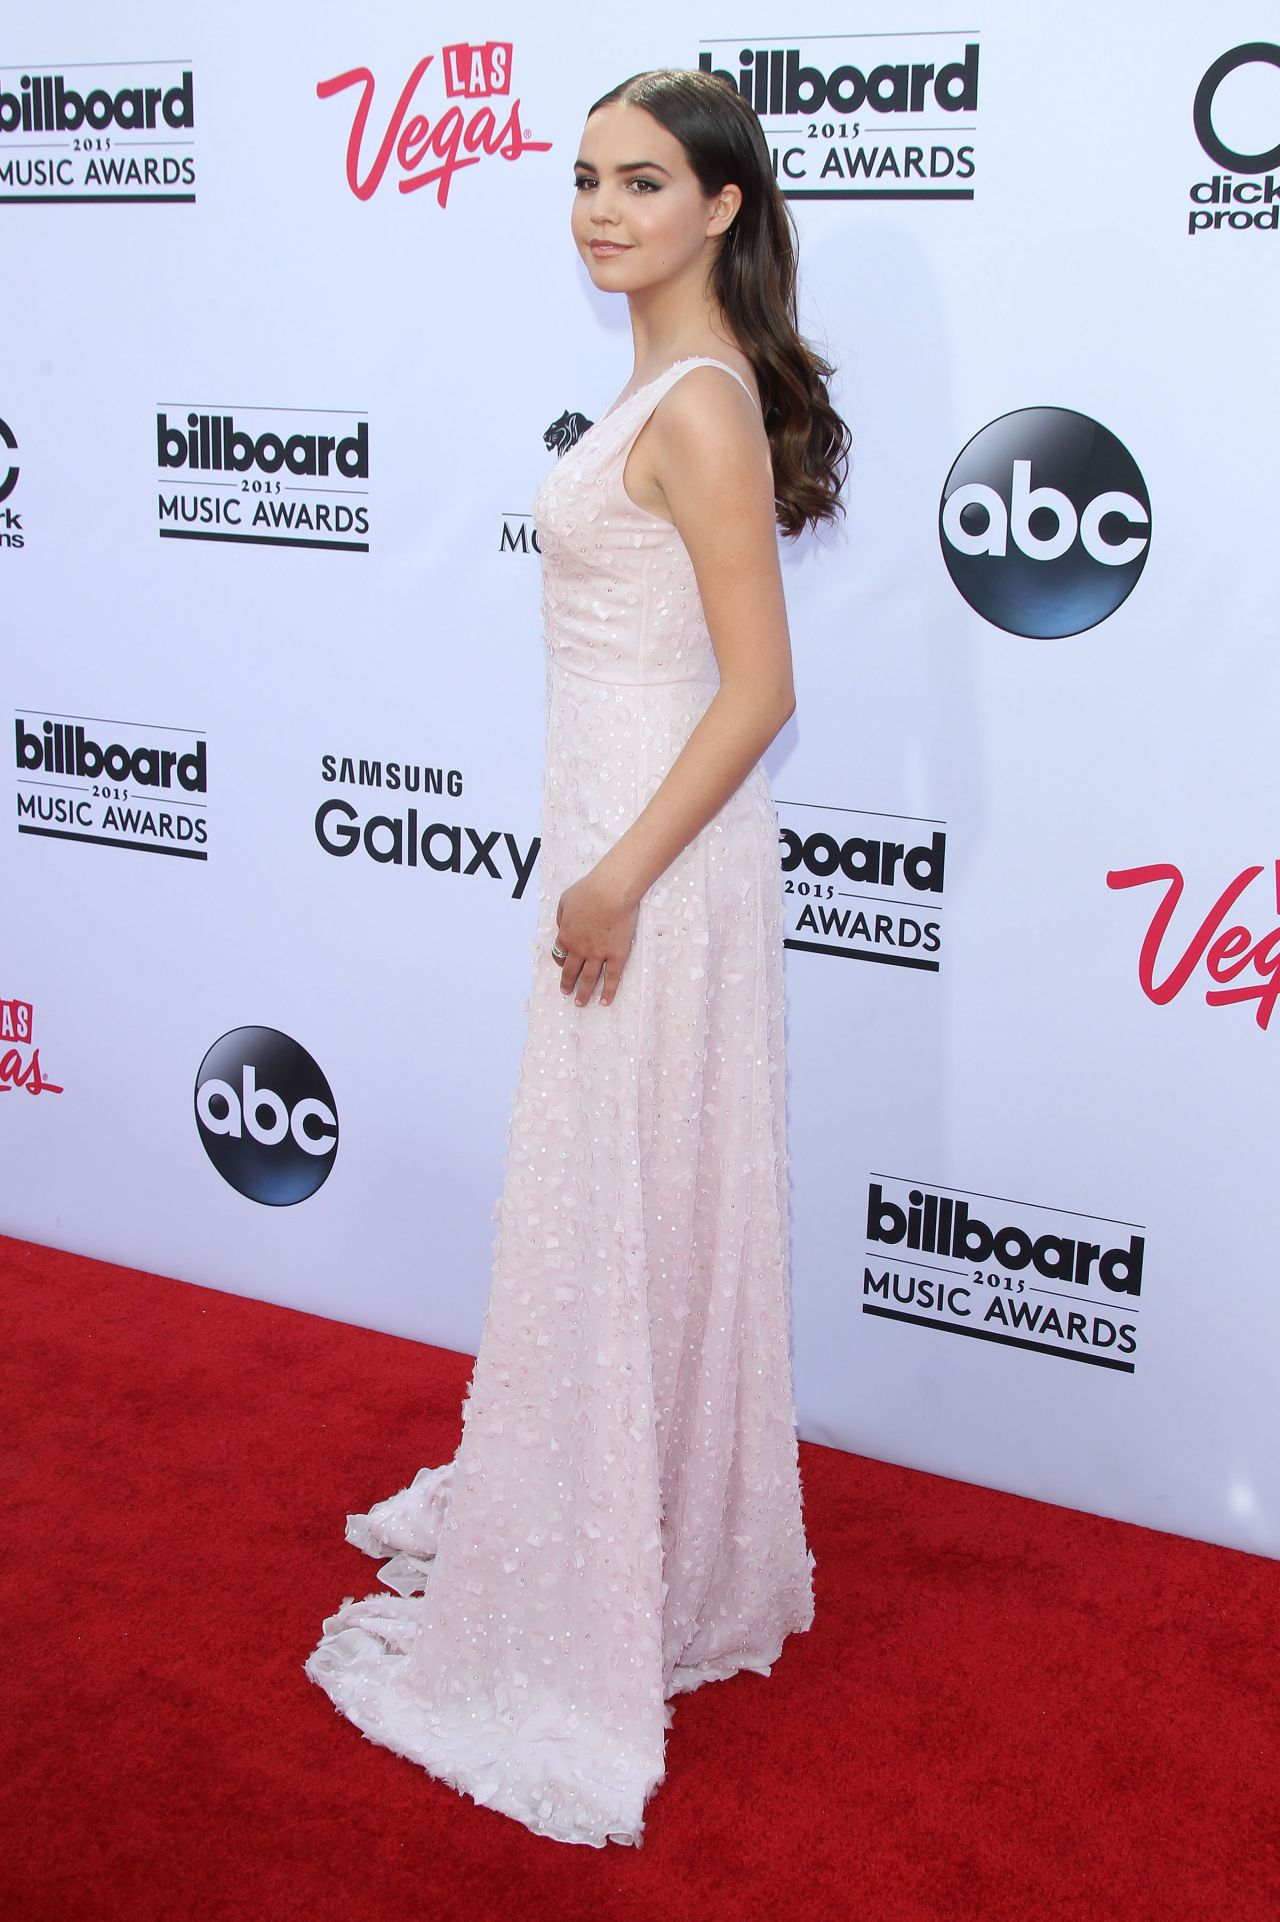 bailee-madison-2015-billboard-music-awards-in-las-vegas_2.jpg